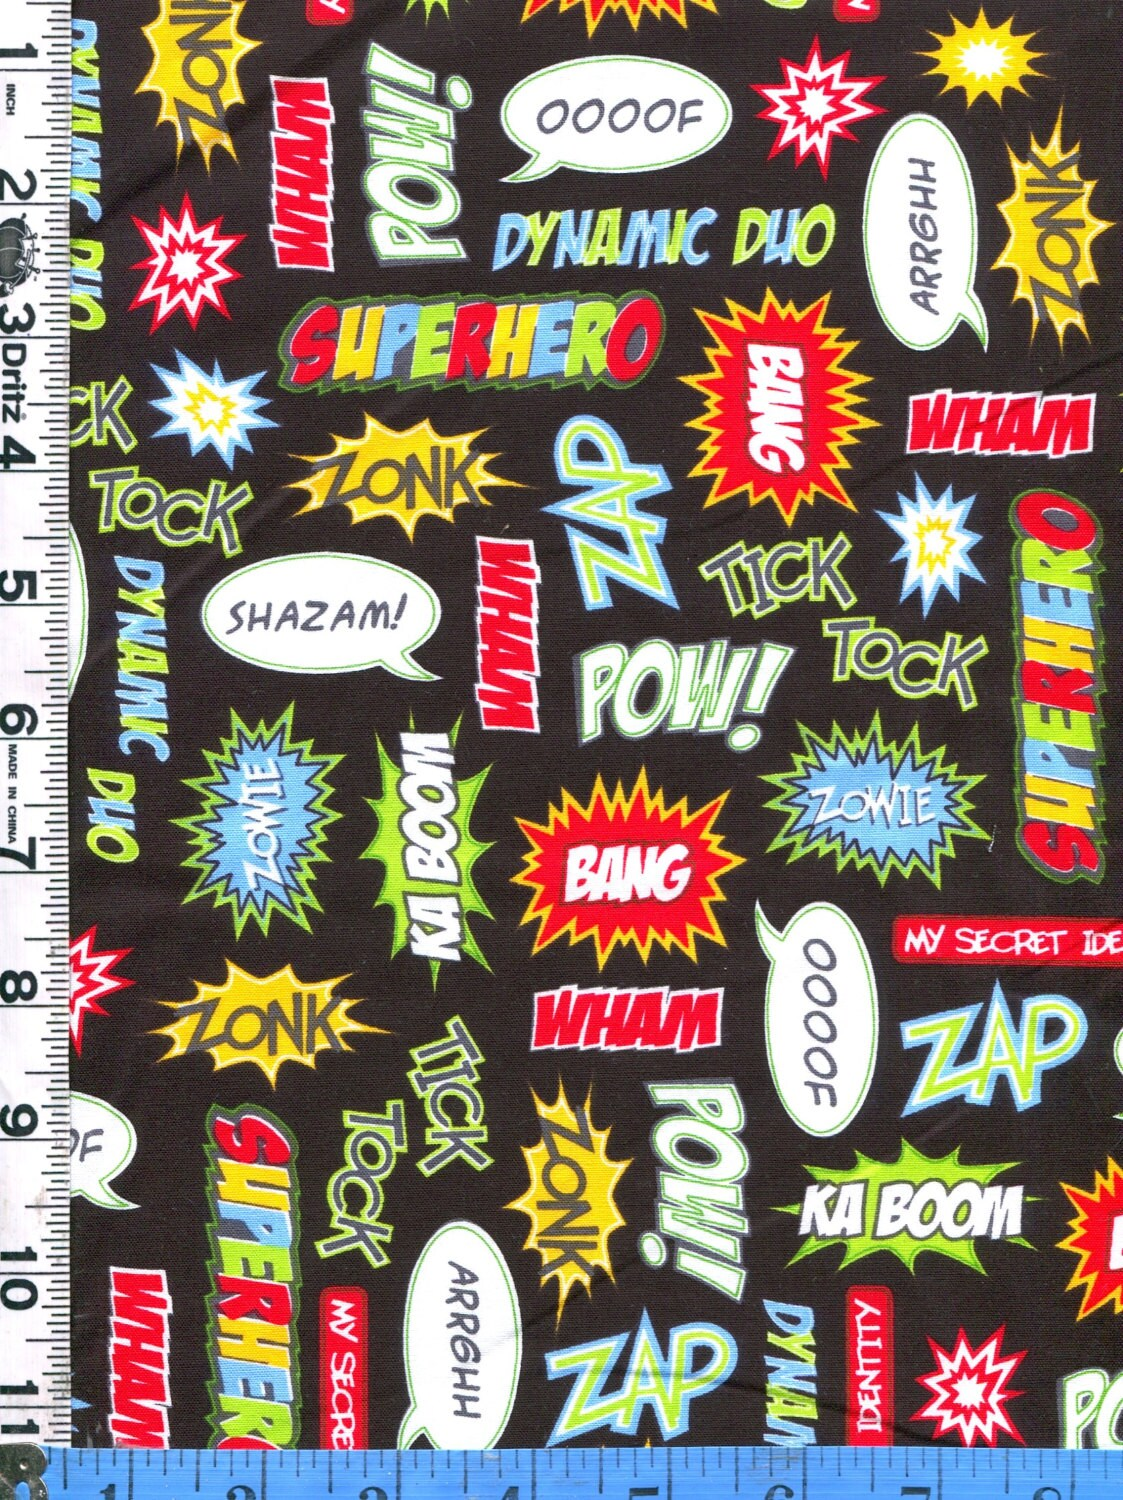 fabric kaufman super hero comic strip action words zonk pow 🔎zoom